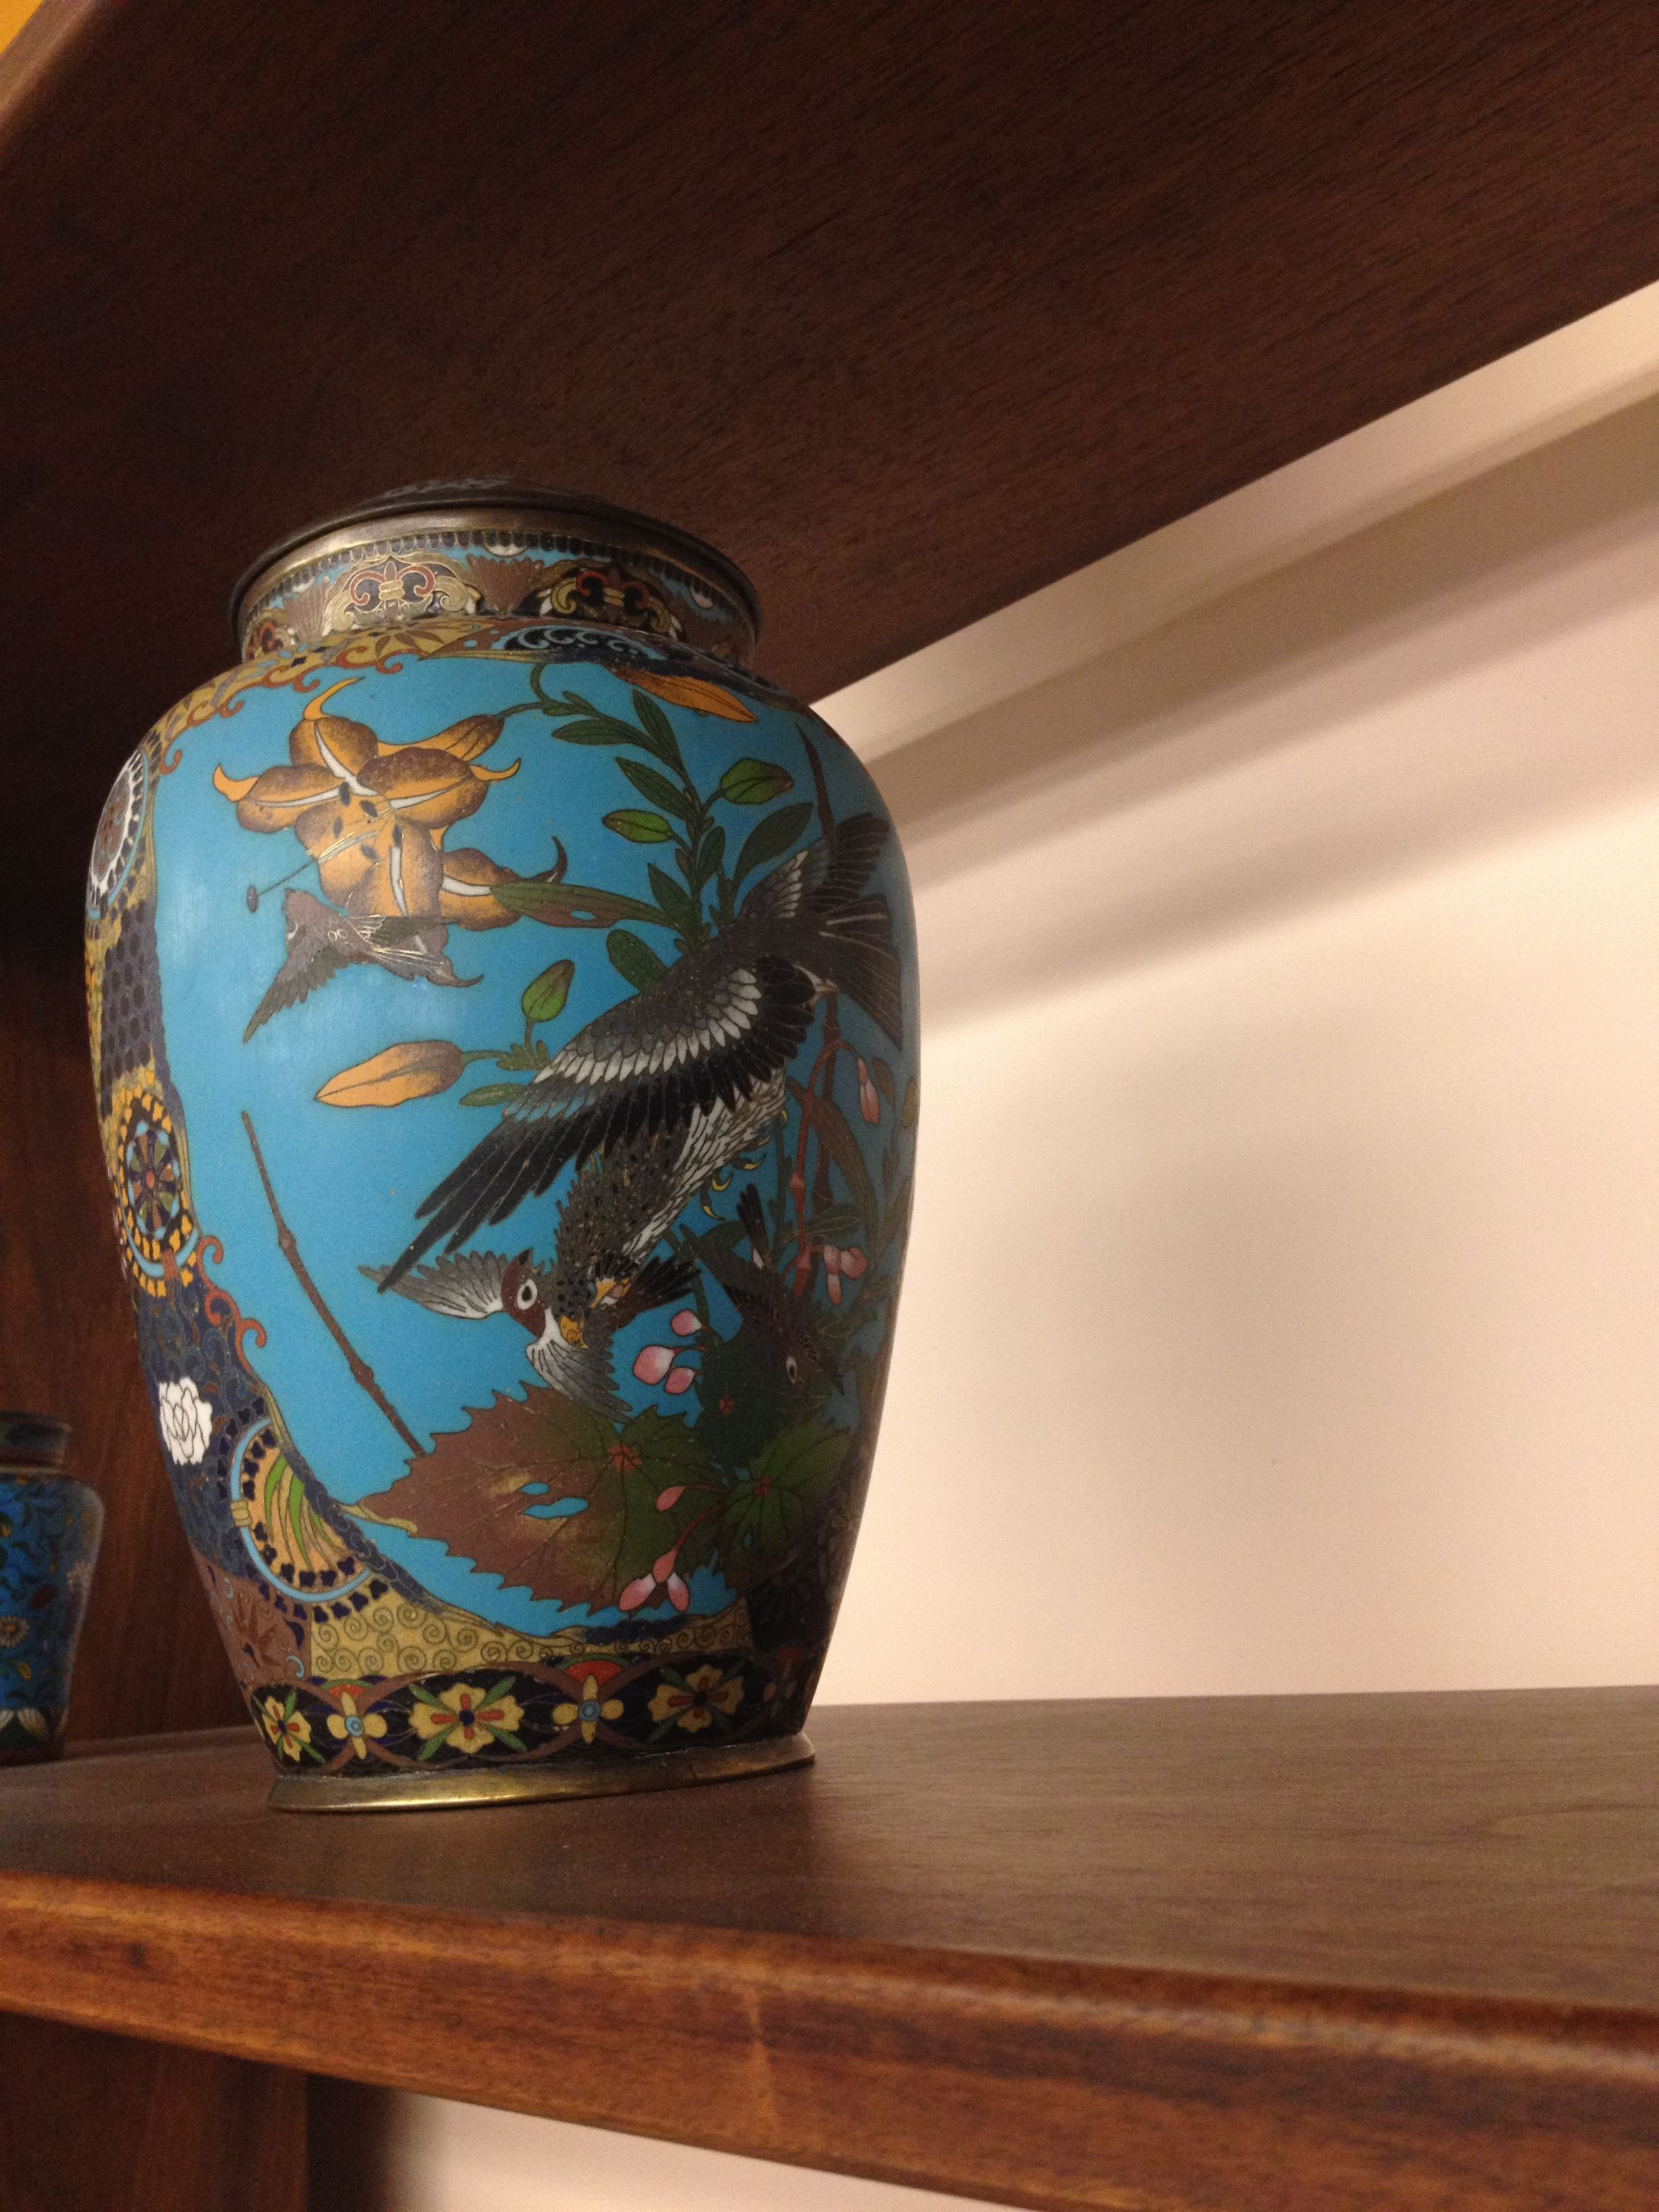 This is an oriental vase found in the rare collections room in the library. it is blue and depicts birds surrounded by flowers. there is very obvious oriental influence.